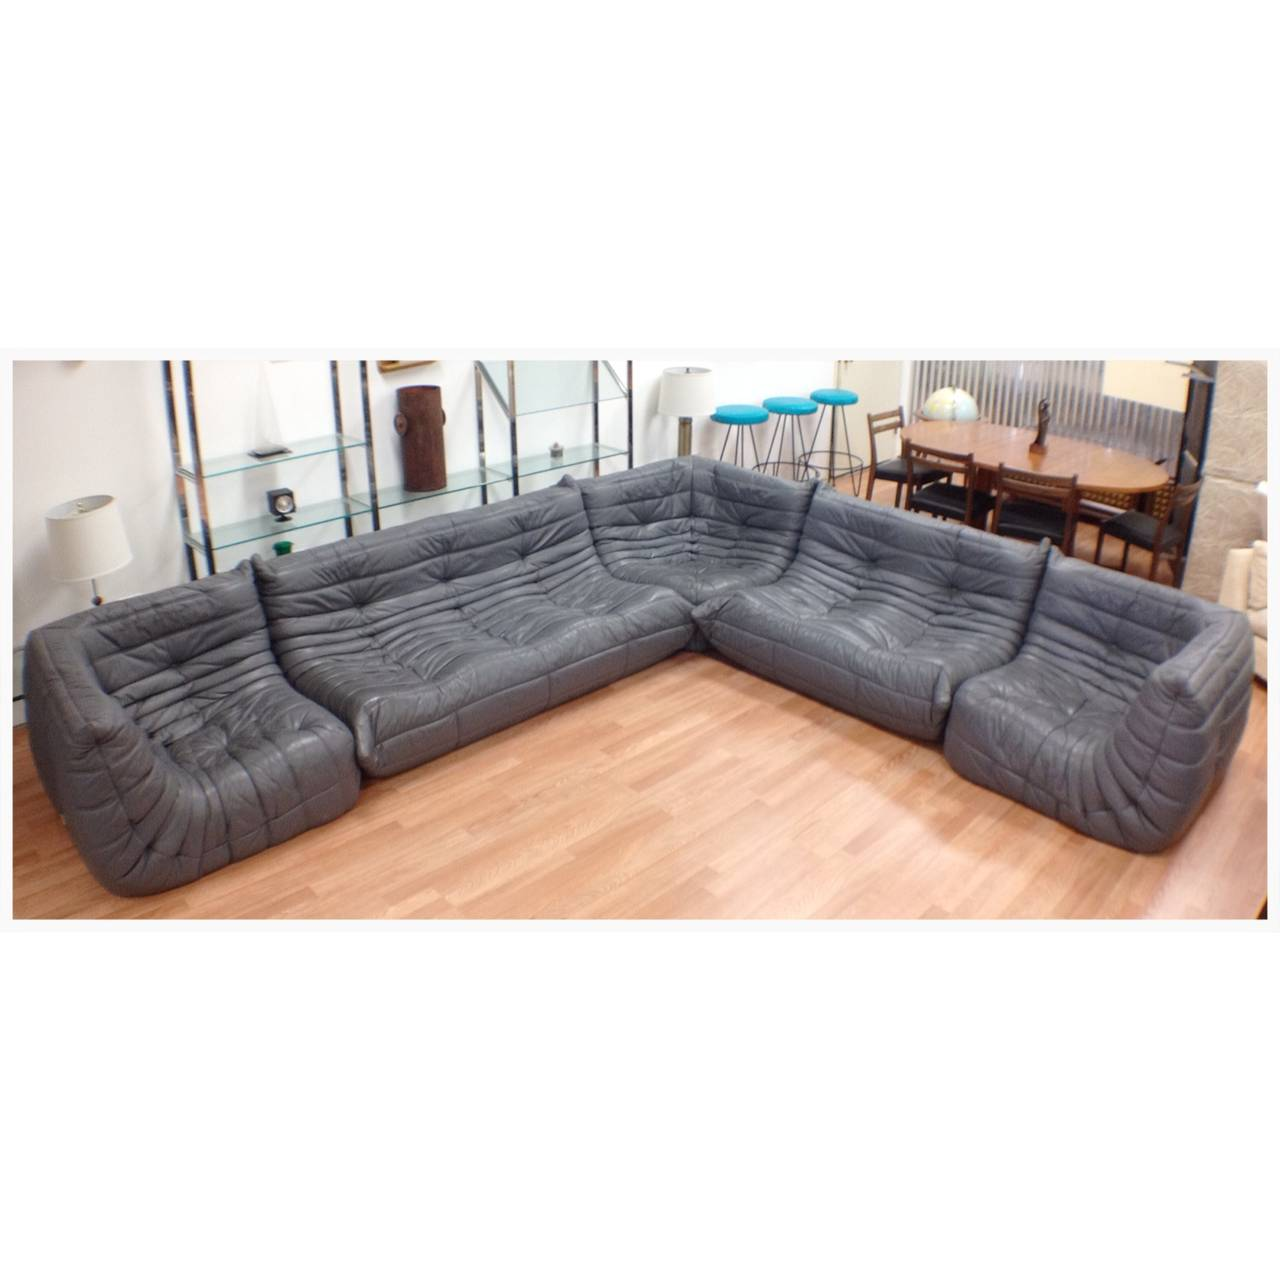 ligne roset togo sofa. Black Bedroom Furniture Sets. Home Design Ideas